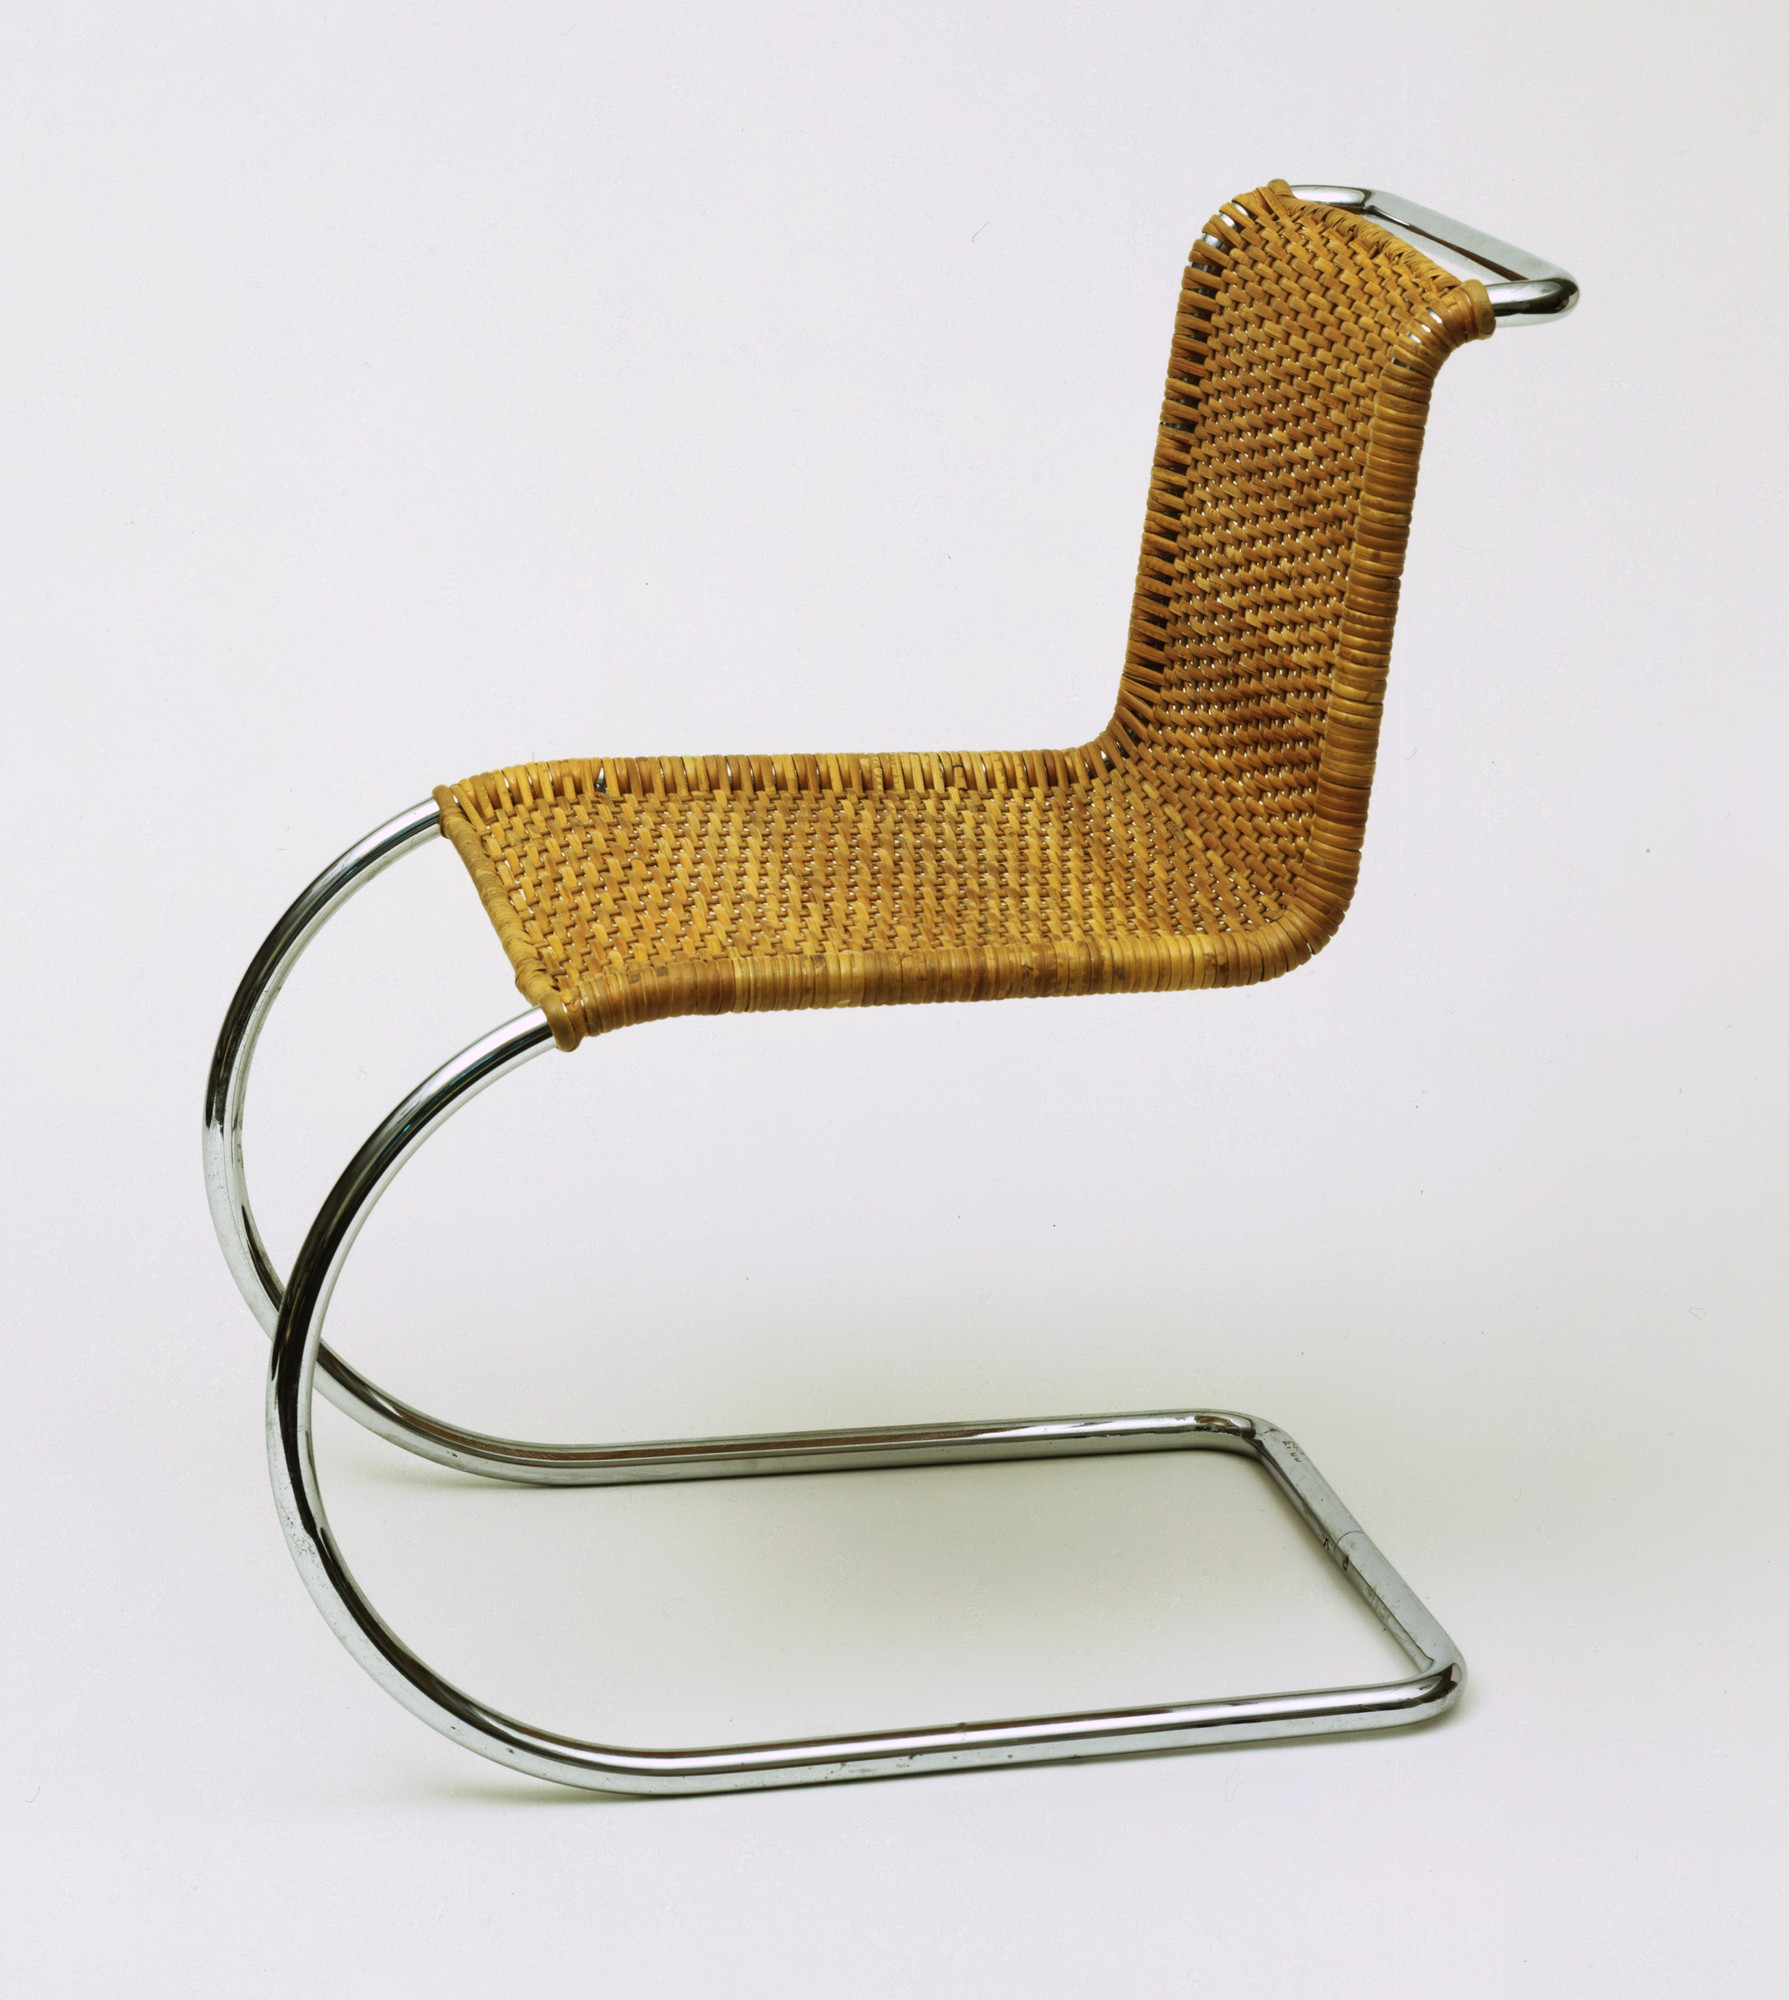 Ludwig Mies van der Rohe. MR Side Chair. 1927